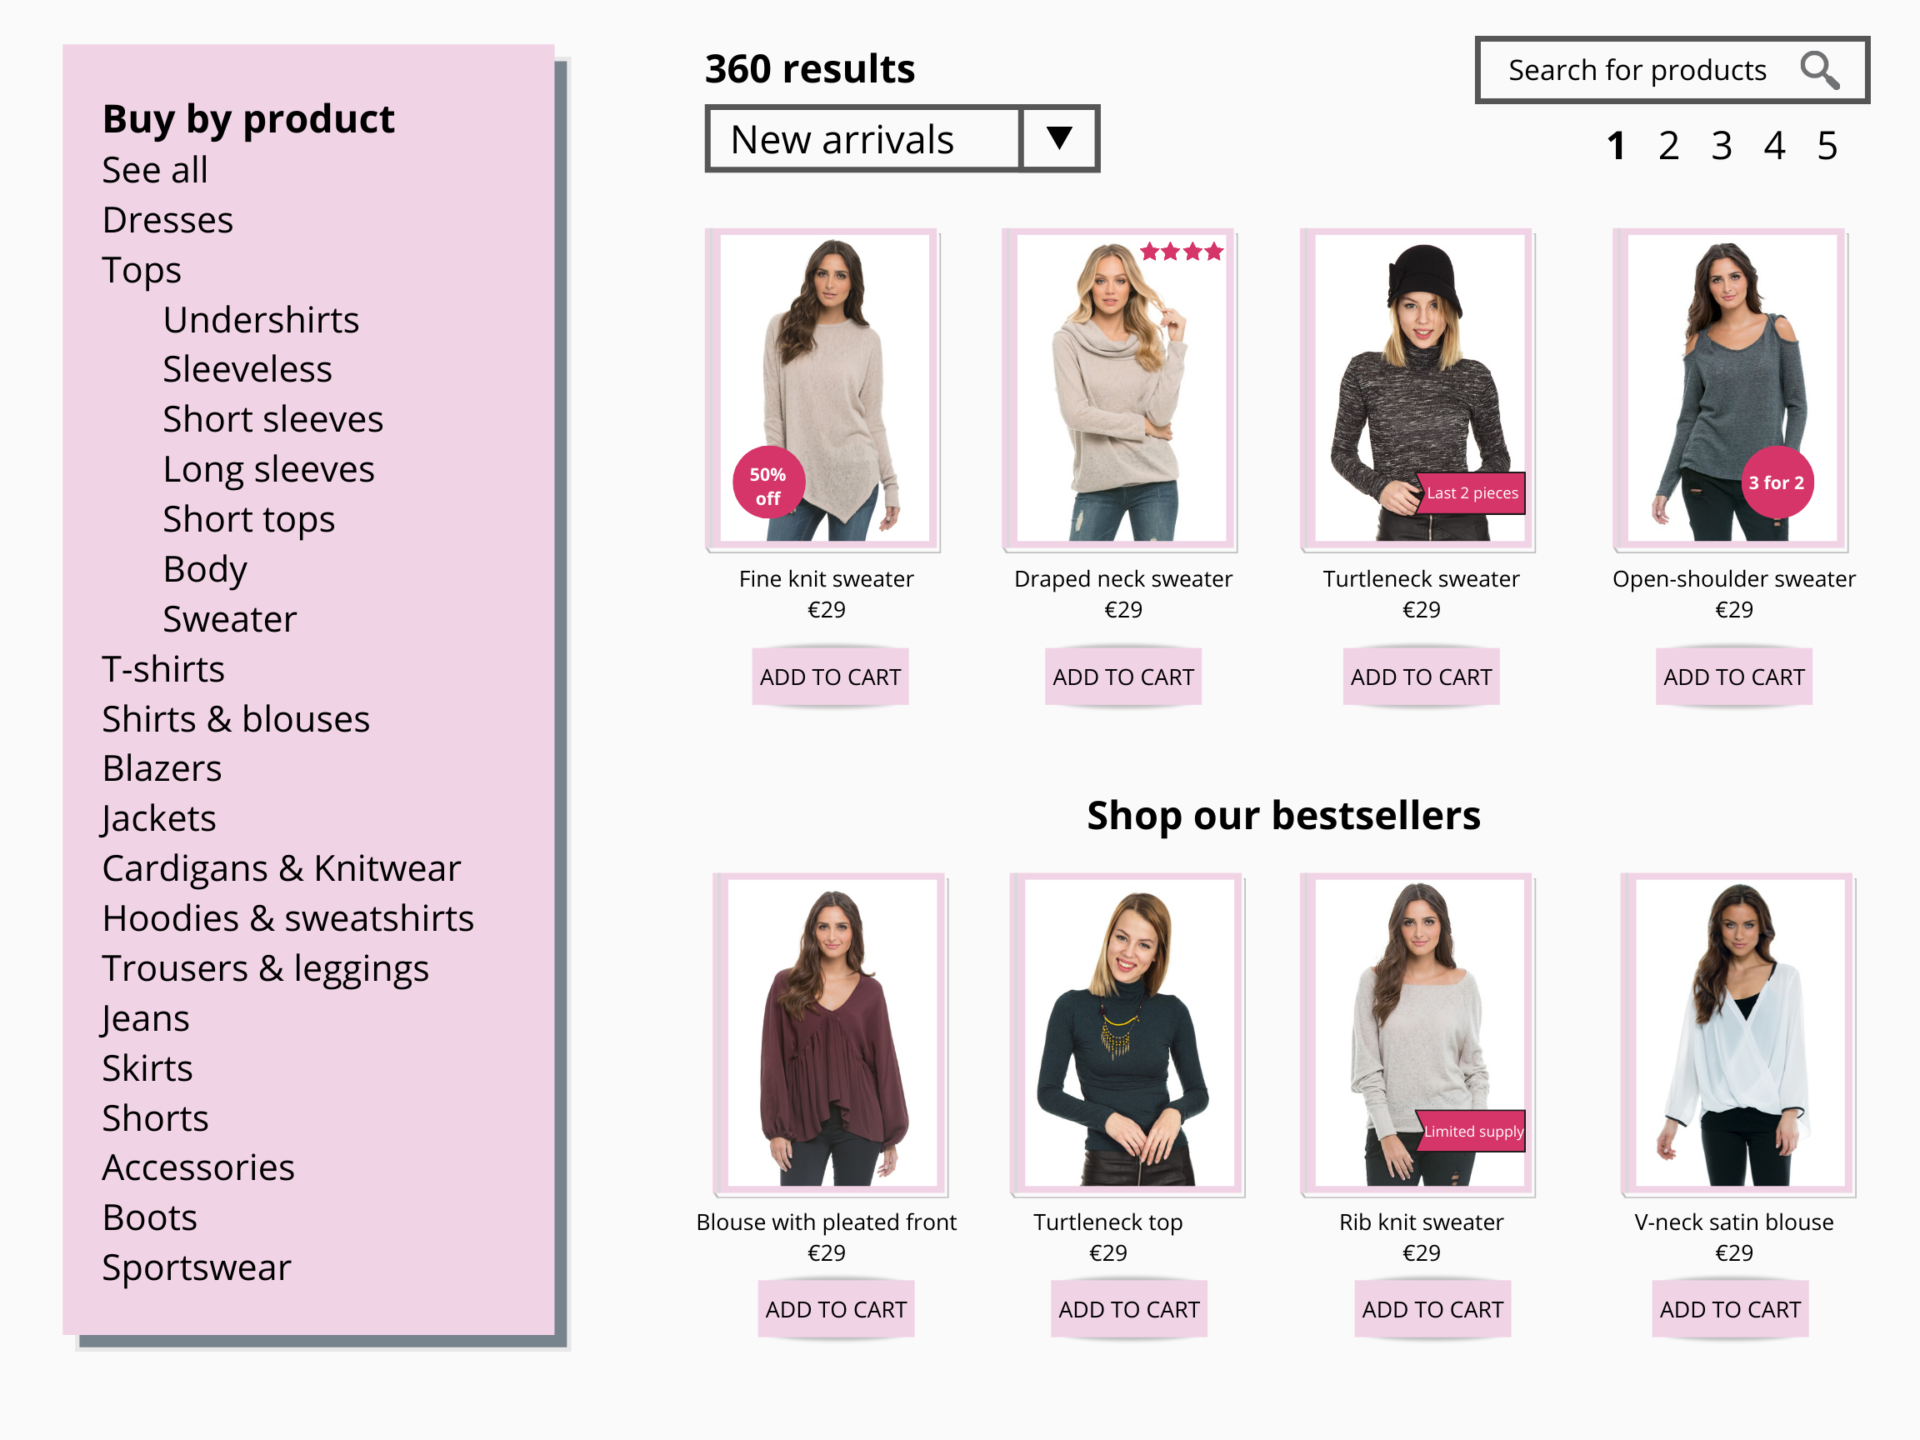 How to personalize and optimize category pages to maximize profitability